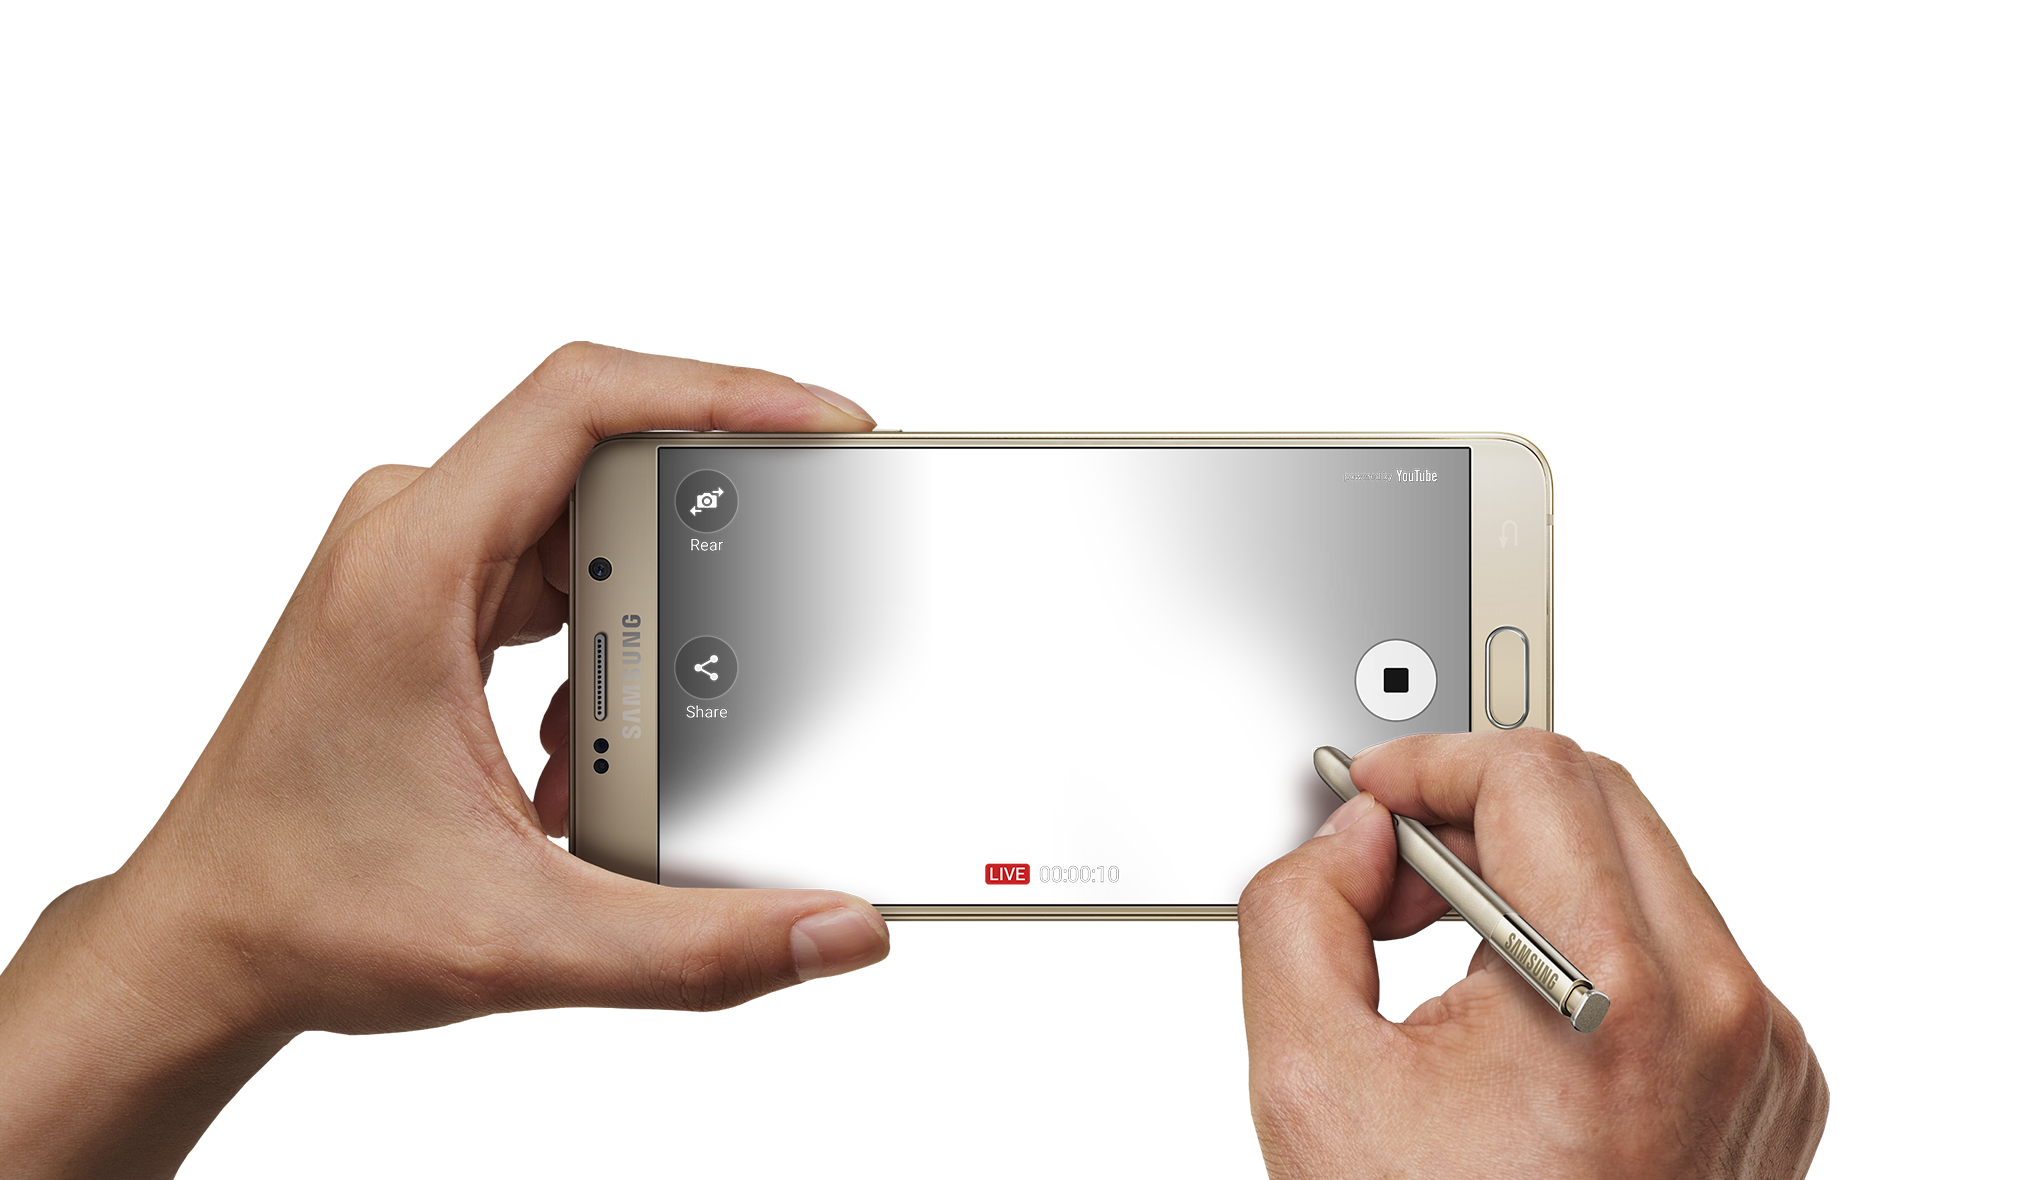 galaxy-note5-entertainment-feature-live-stream-handxdtsut.png